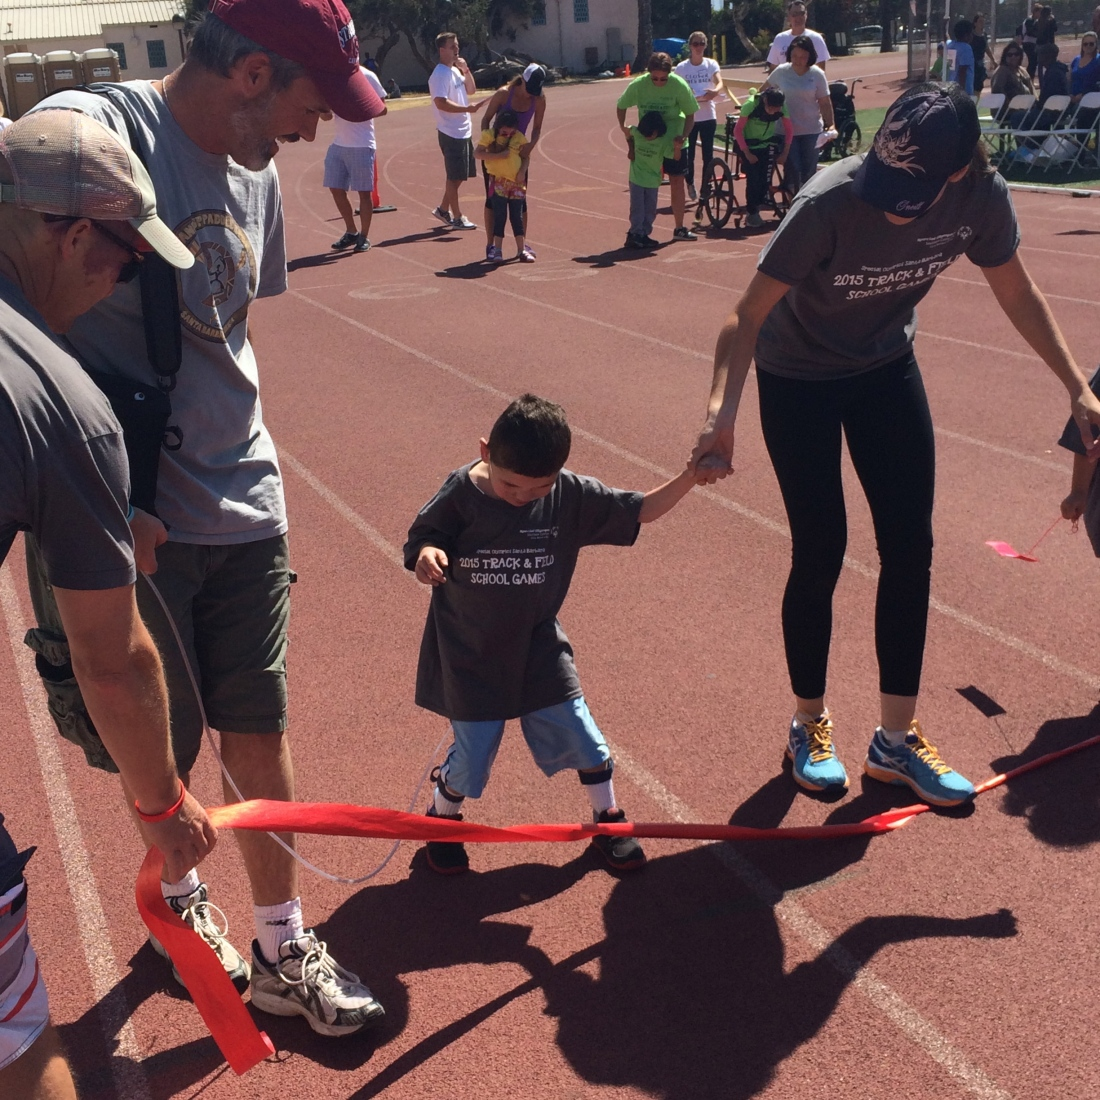 Rudy wasn't too keen on the loud, crowded event…his 25m unassisted walk event kind of turned into the 3 foot drag (ha ha ) but he finally crossed the finish line!...